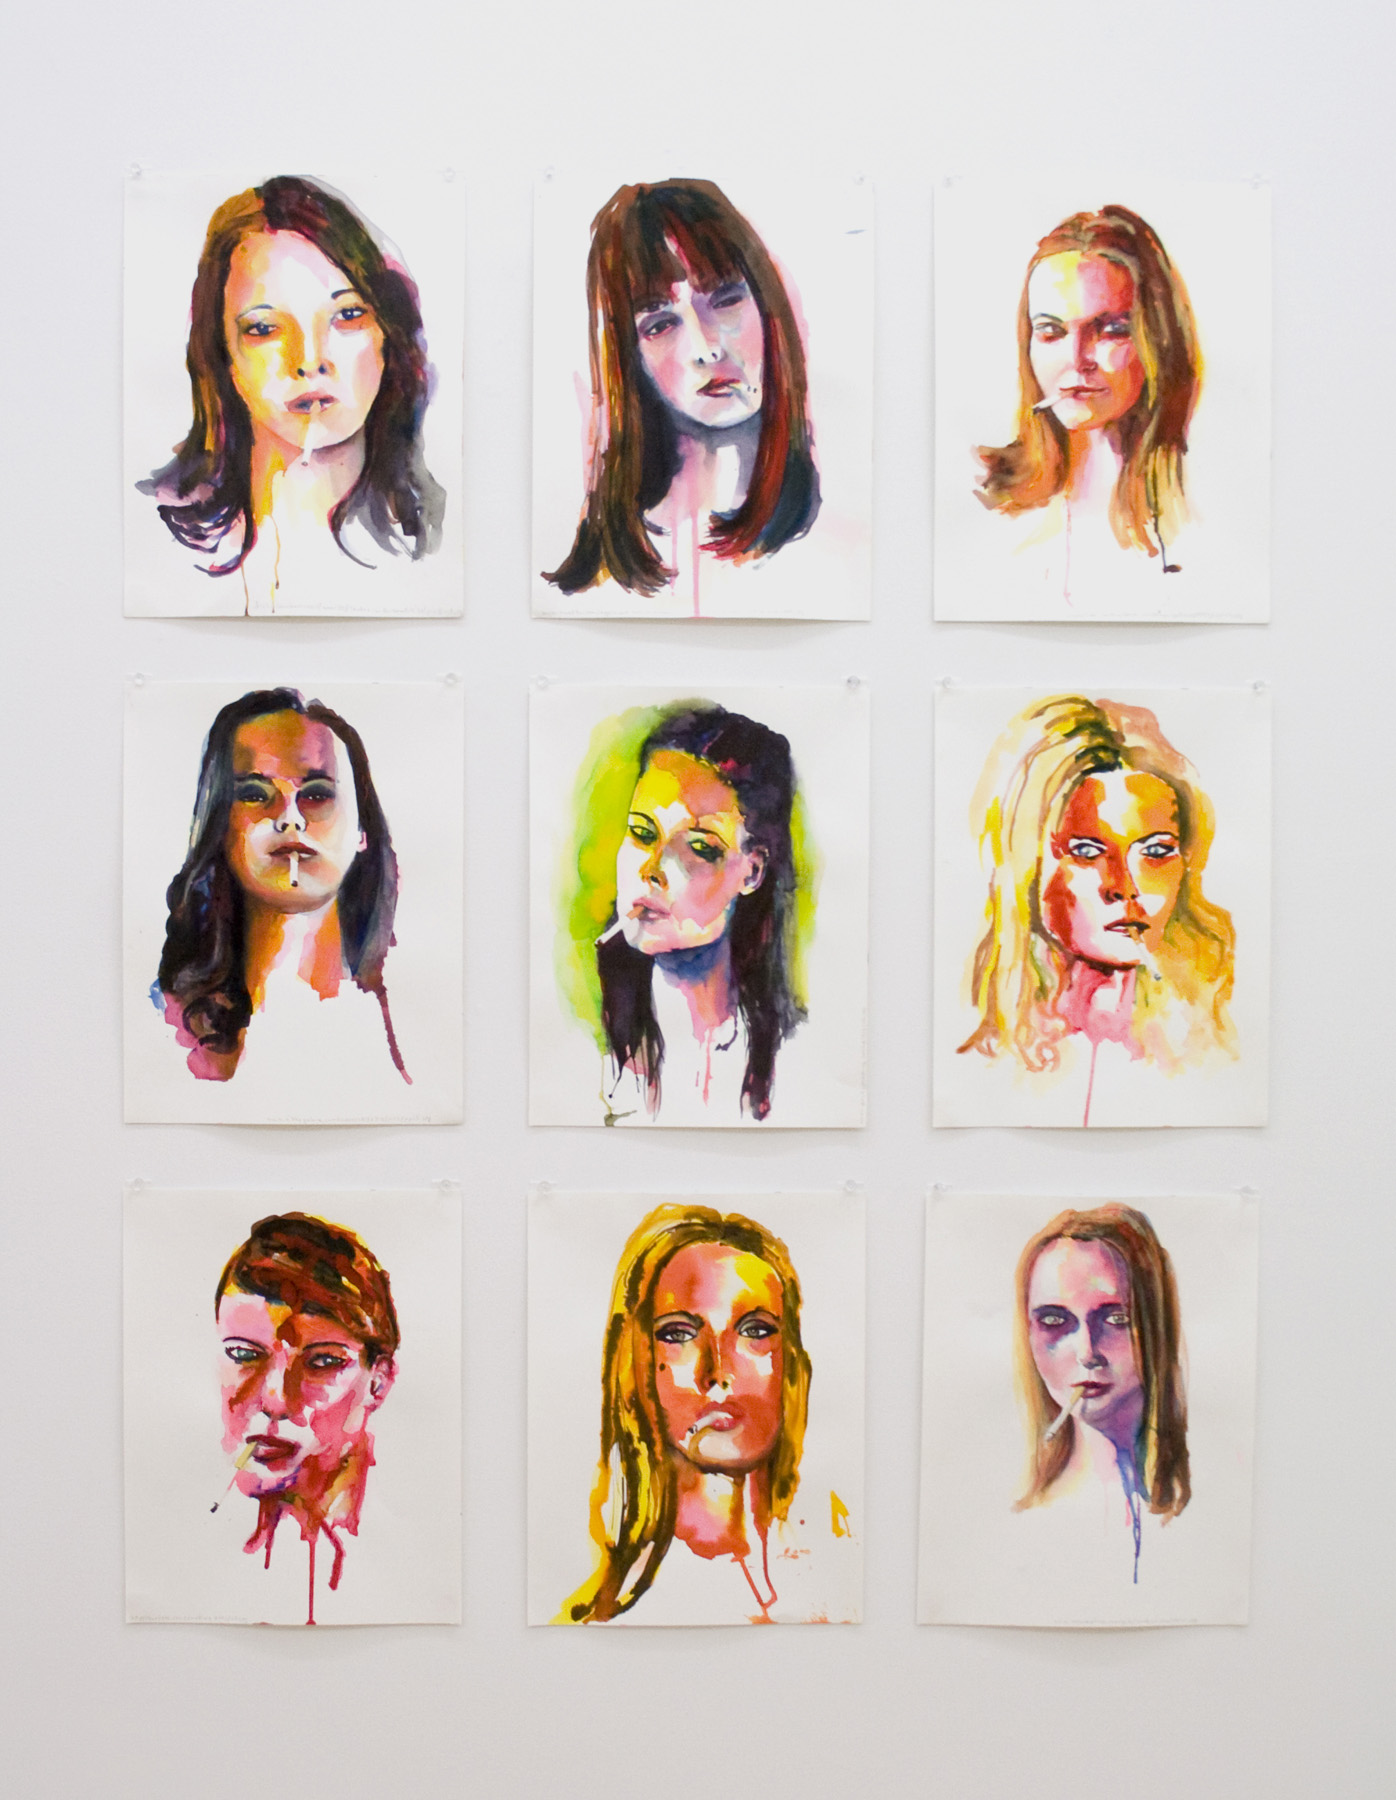 """Randy Moore, """"Smokers (set 1),"""" 2007, Watercolor on paper"""